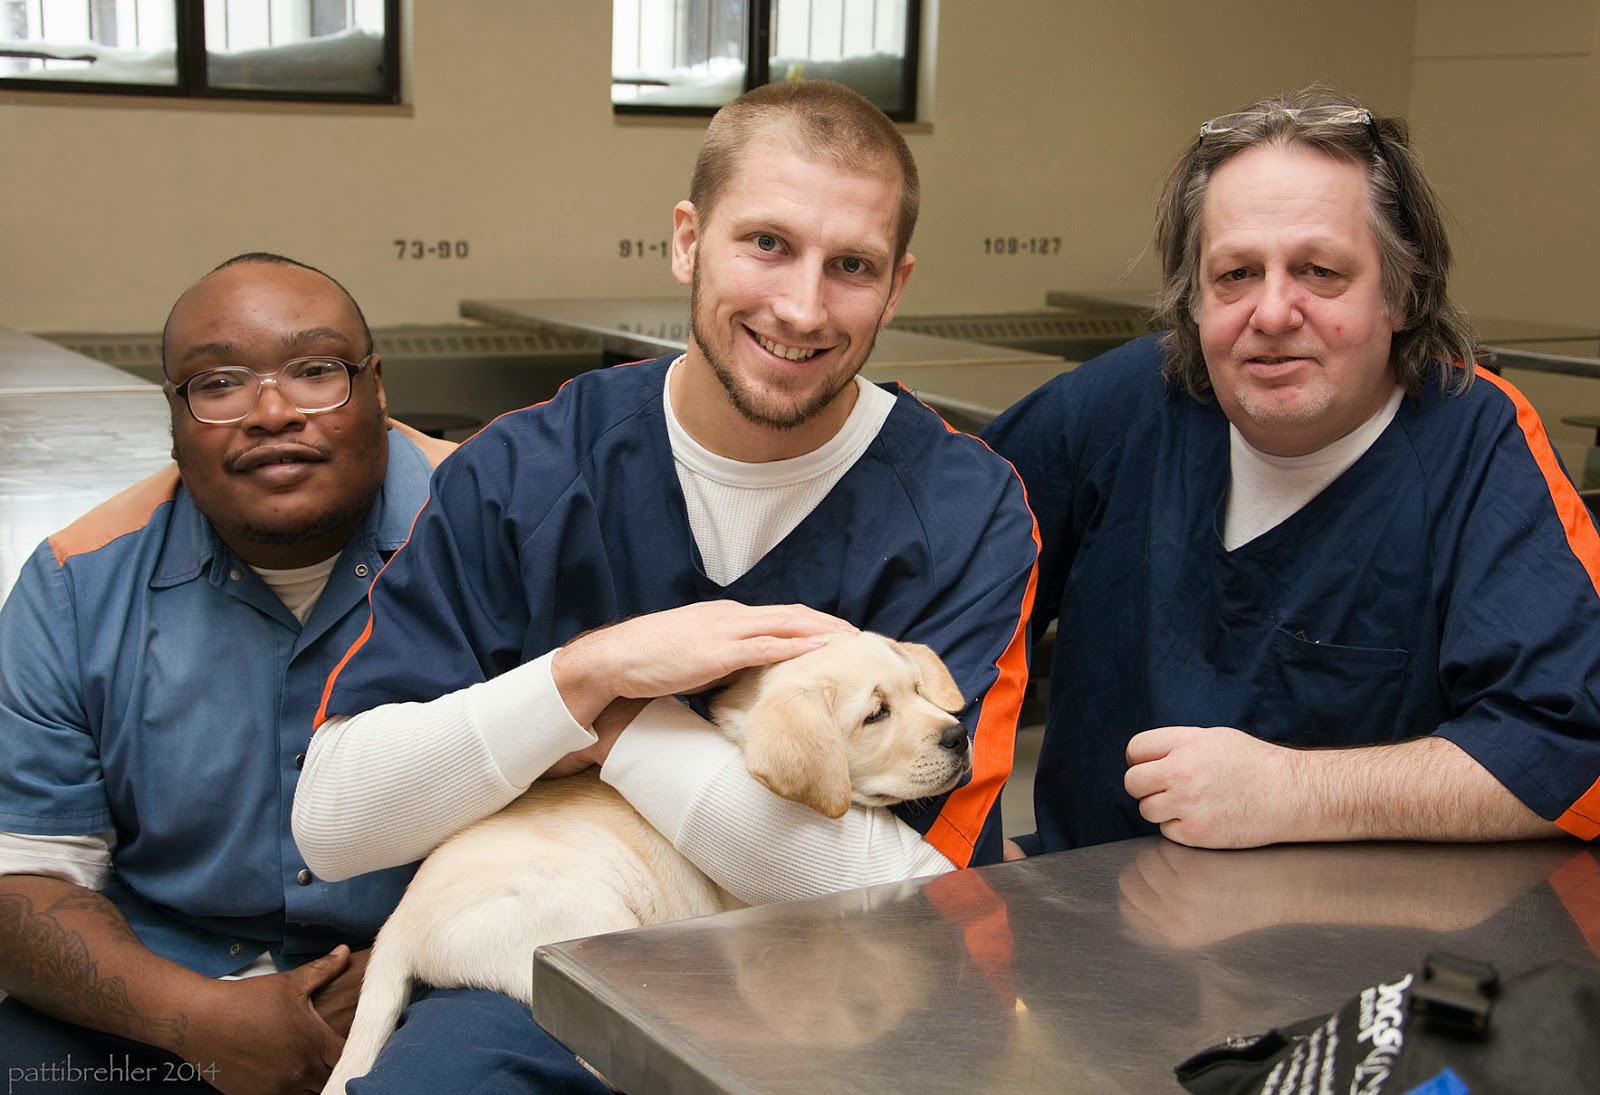 A small yellow lab is held by one man sitting in the middle of two other men at a metal table. The man on the left is african american and his head is bald and he is wearing glasses. The man in the middle has a buzz cut, and the man on the right has longer grey hair, he also has glasses pushed up on his head. They are all wearing blue shirts with orange stripes on the shoulders, with white tshirts underneath. They are smiling.